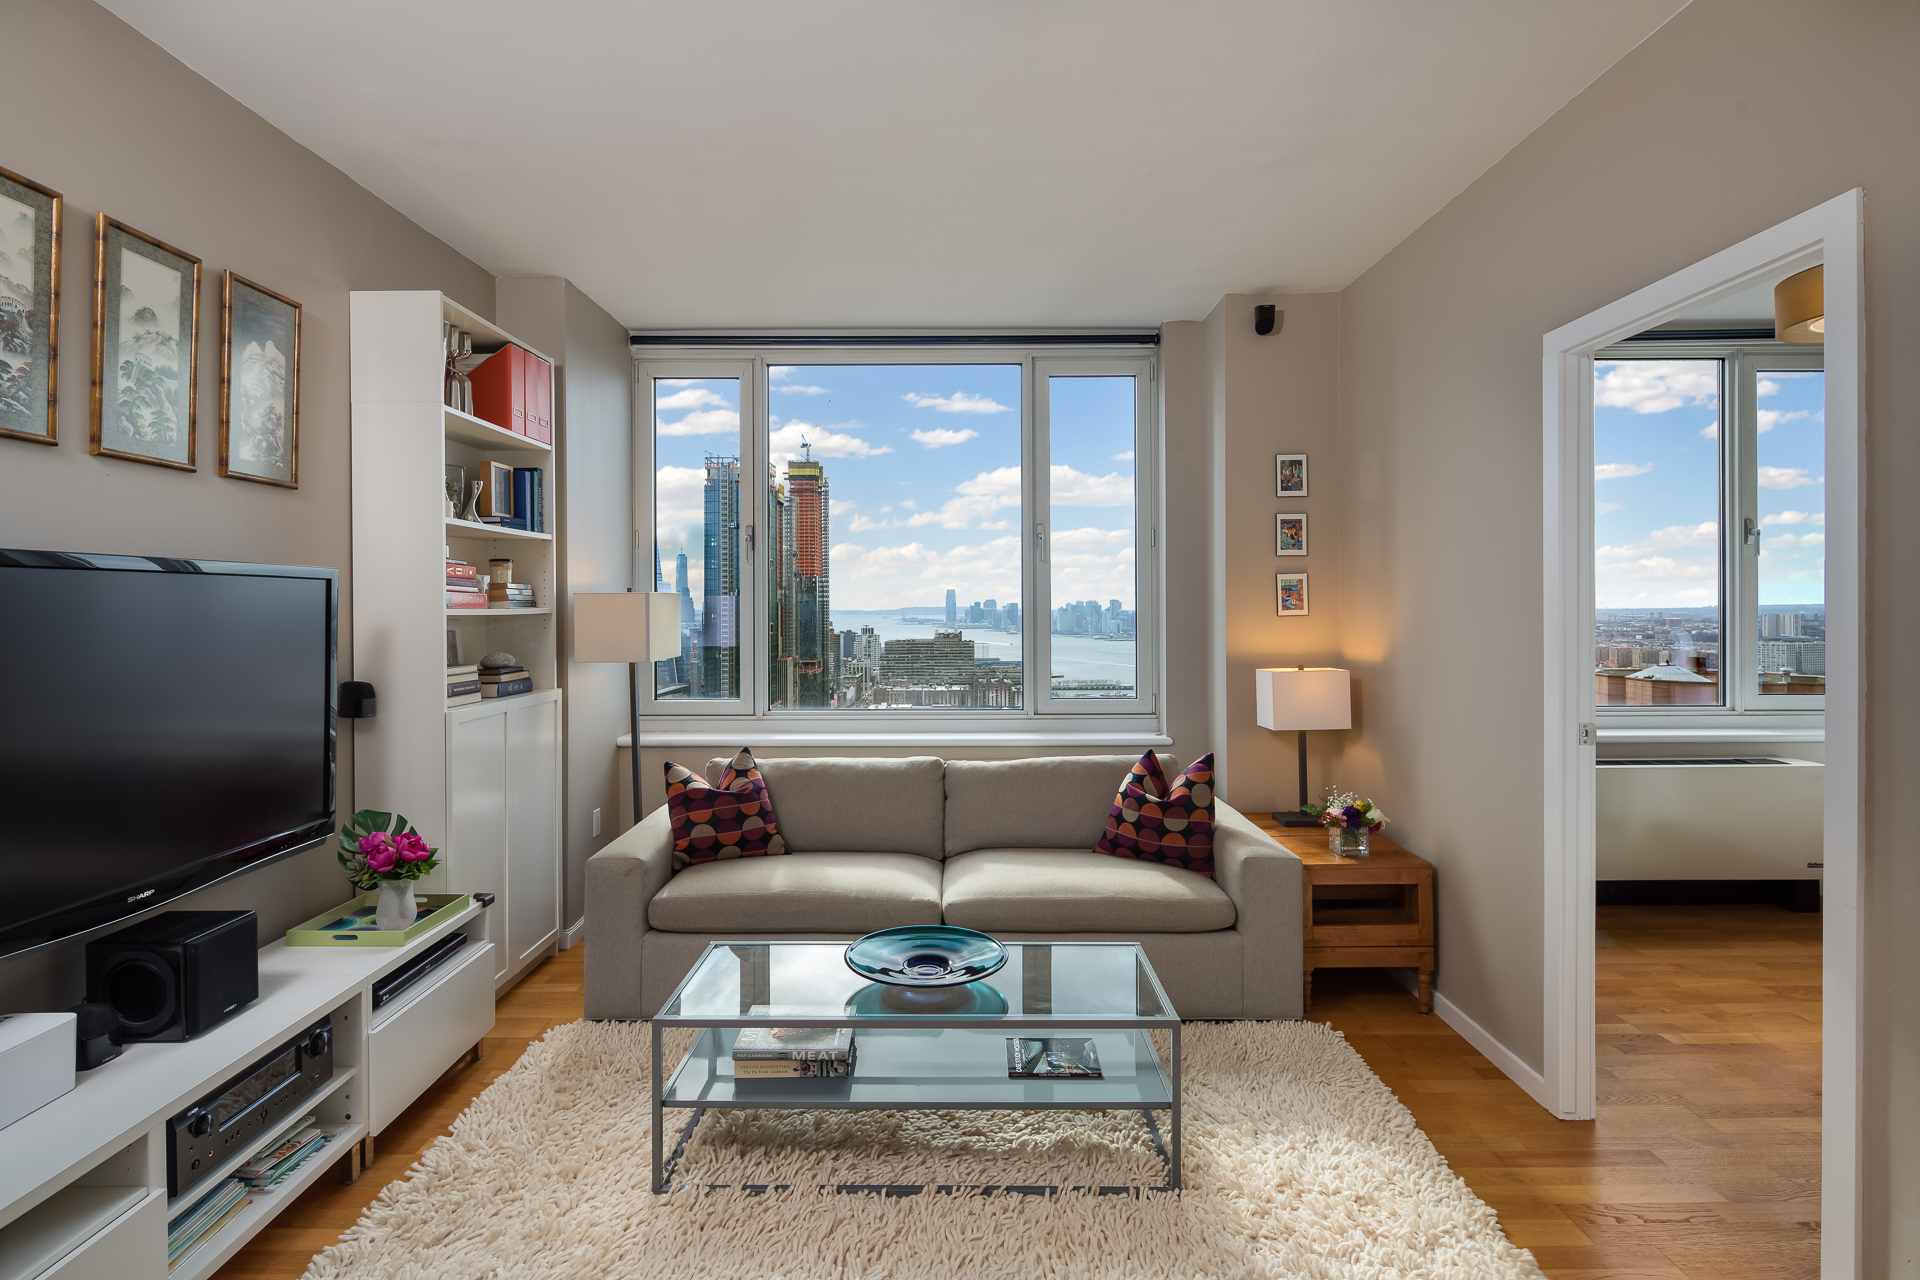 Condominium for Sale at 635 WEST 42ND STREET 635 West 42nd St., 41H, New York, New York,10036 United States